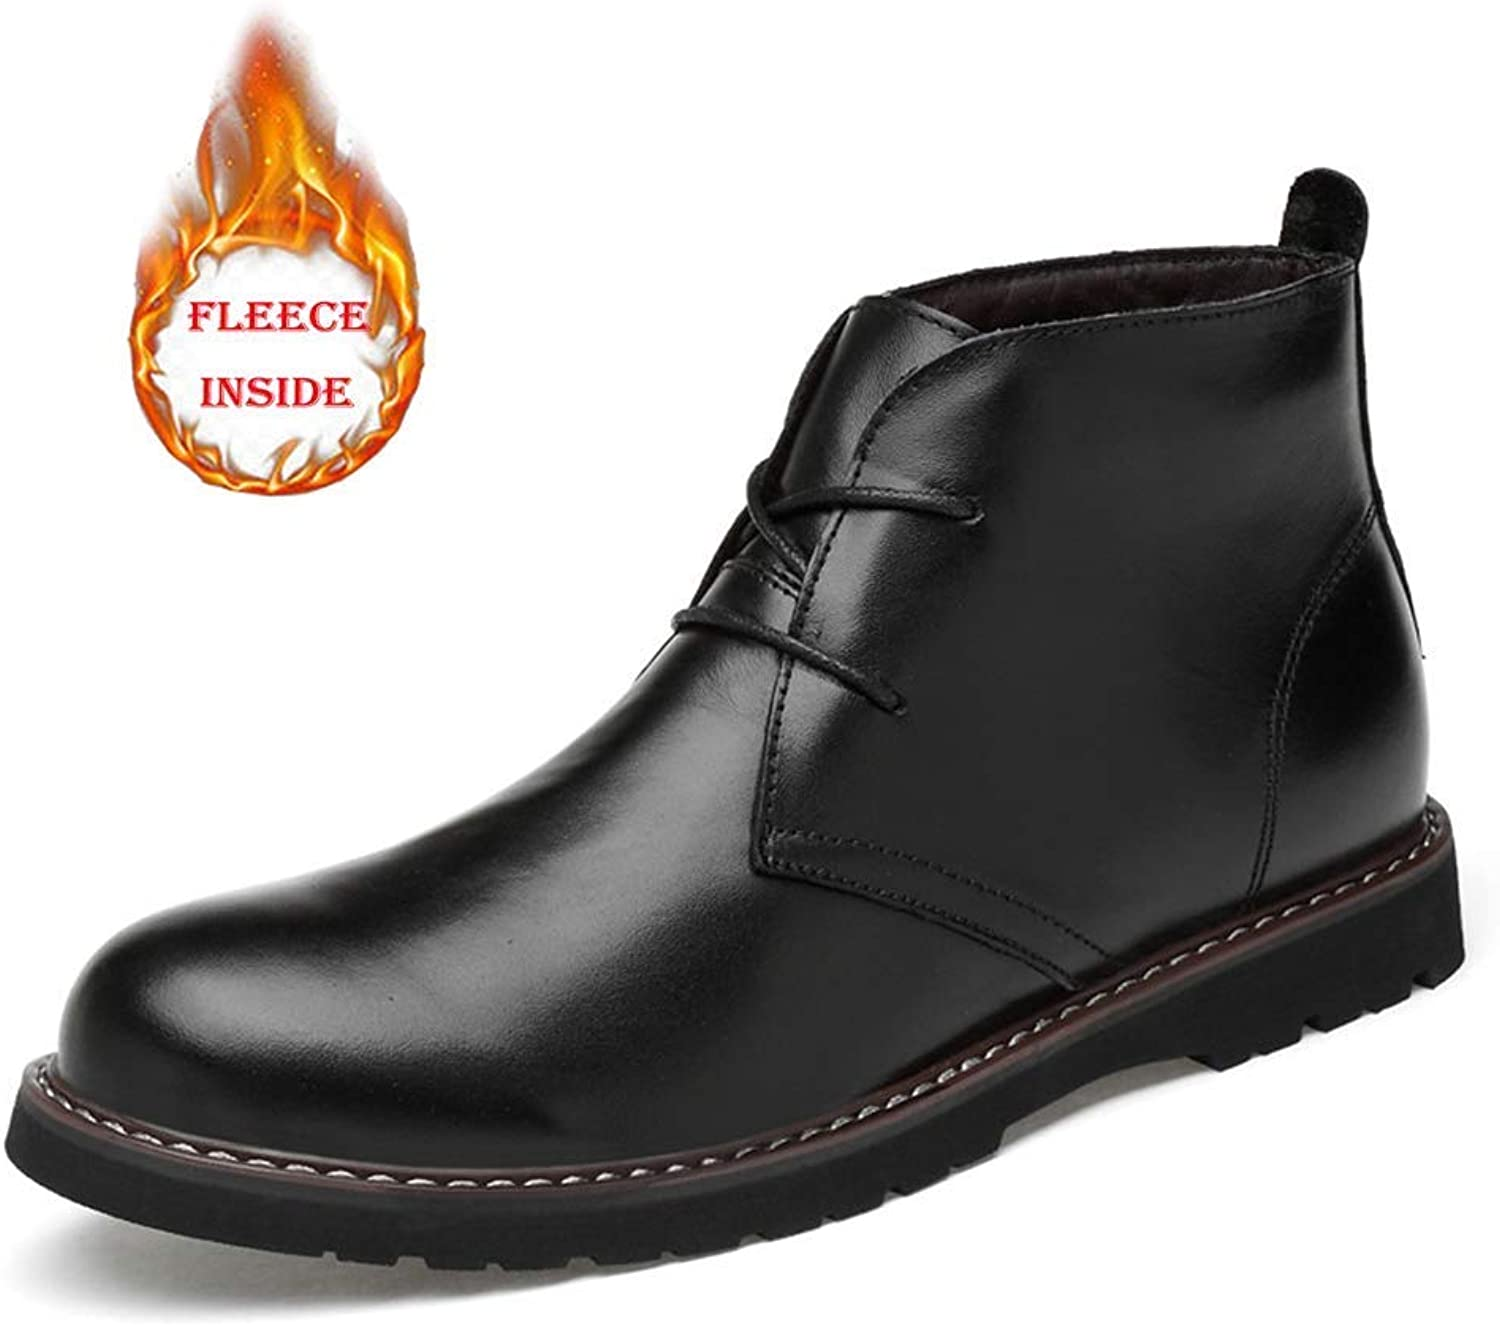 Fuxitoggo Stivaletti da Uomo High Top High-End Ox in Pelle Caldo Casual Softlavoro Sautope (Opzionale Convenzionali) (Coloreee  Warm nero, Dimensioni  45 EU) (Coloreee   Warm nero, Dimensione   42 EU)